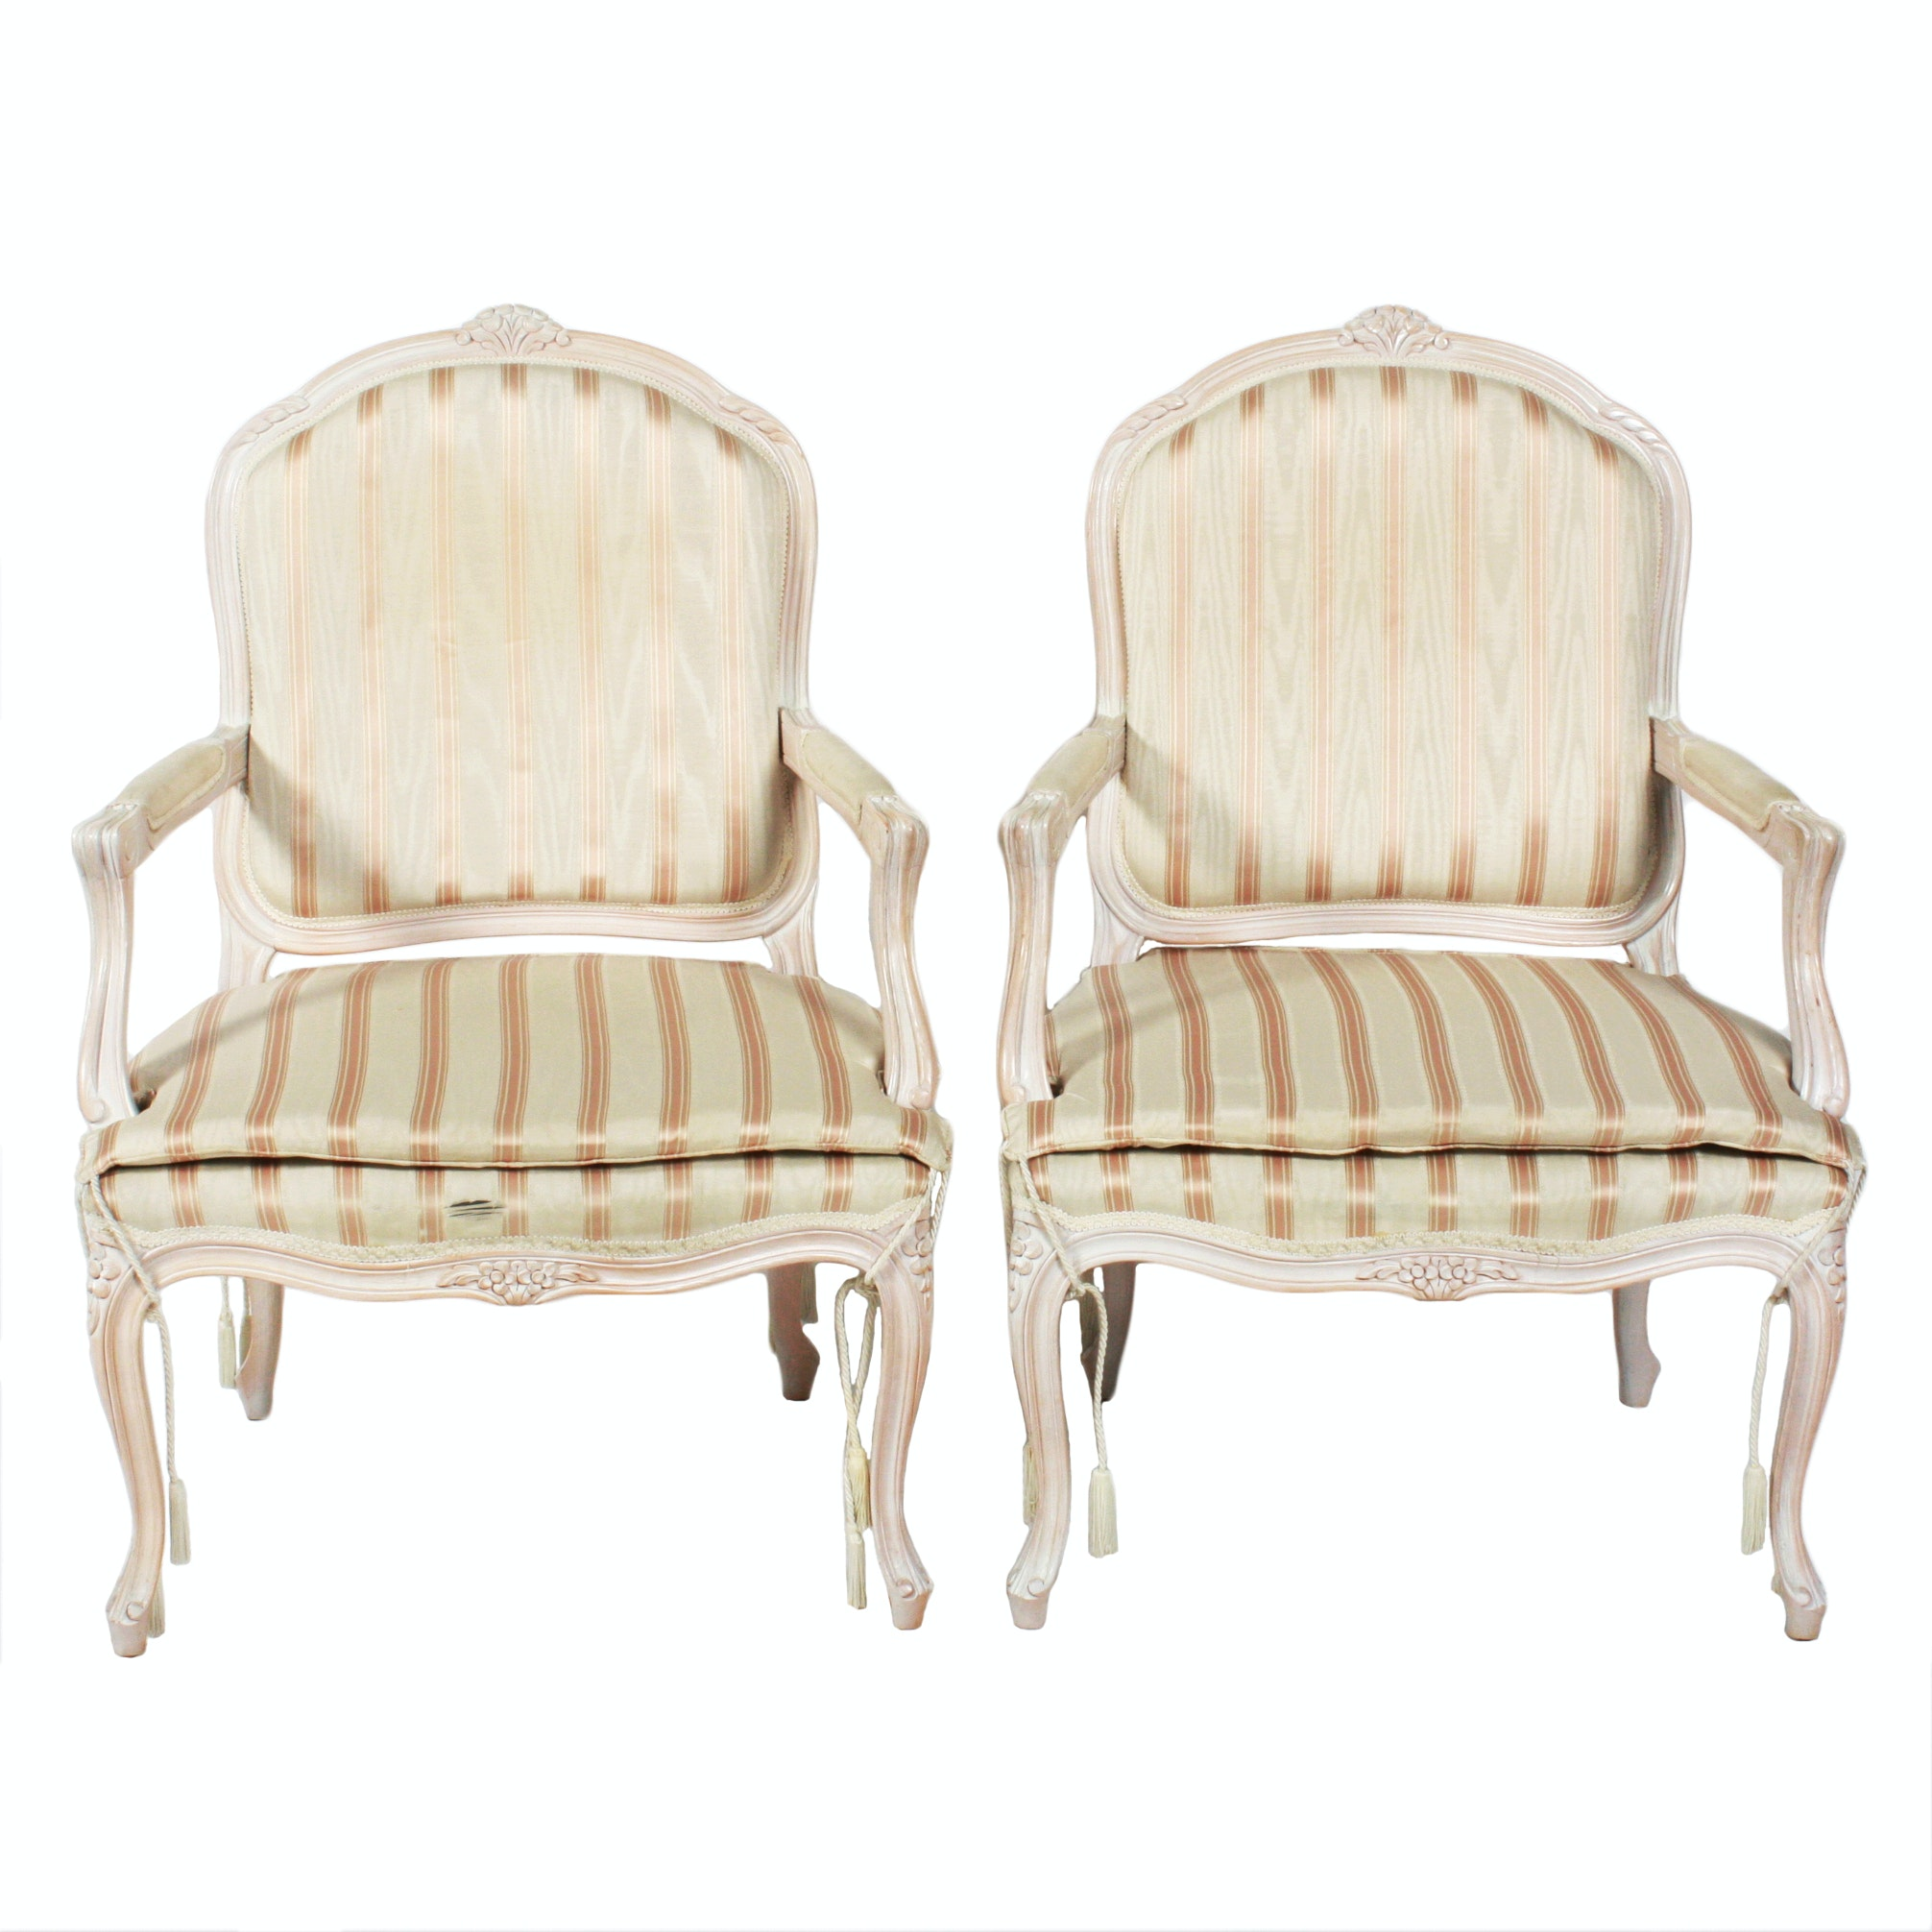 Pair of Polychrome Louis XV Style Fauteuils